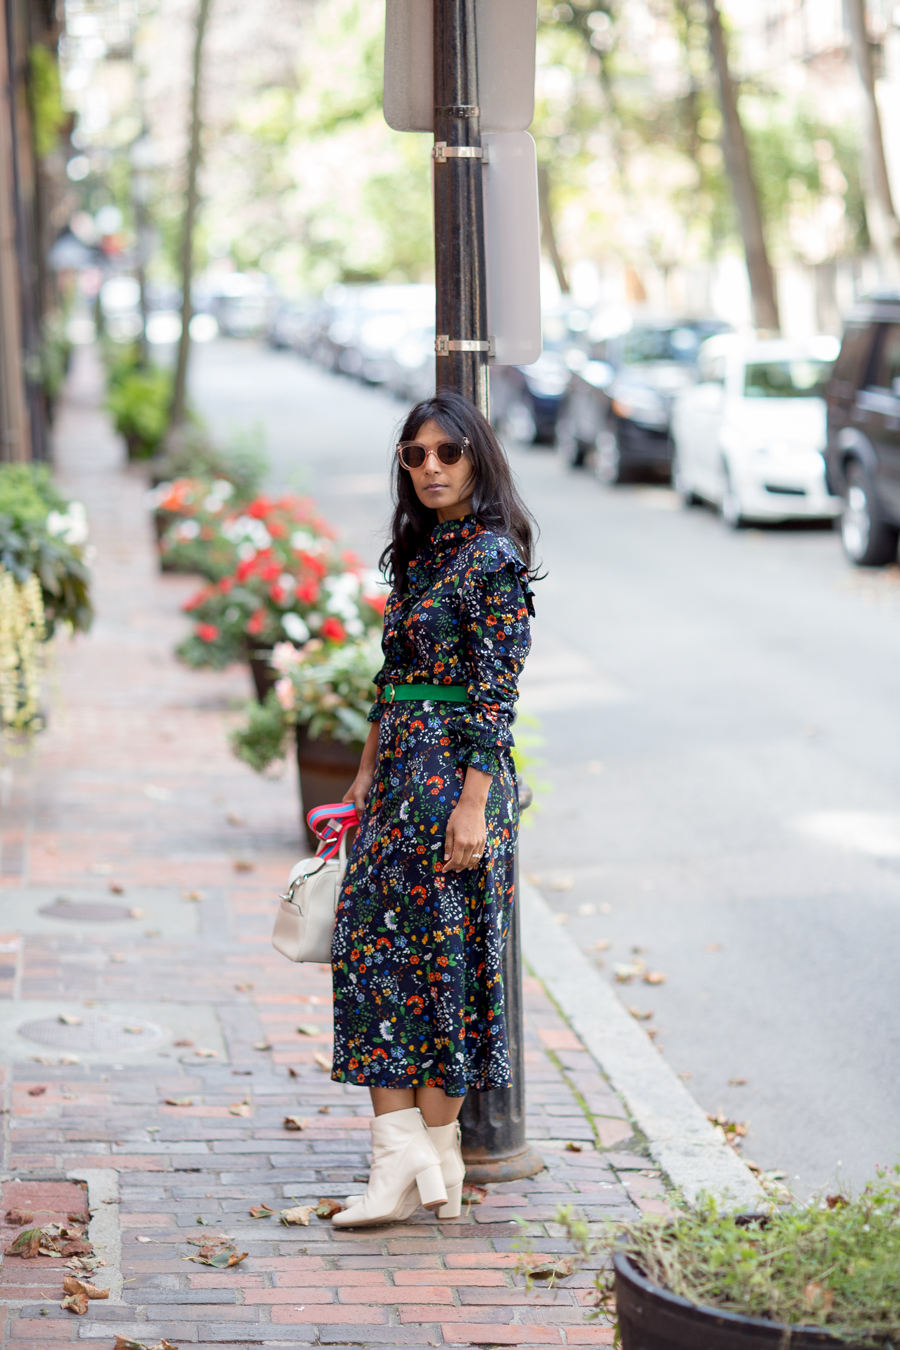 fall fashion, mididress, european style, edgy, afforable style, petite style, petite blogger, h&m, banana republic, marc jacobs, style tips